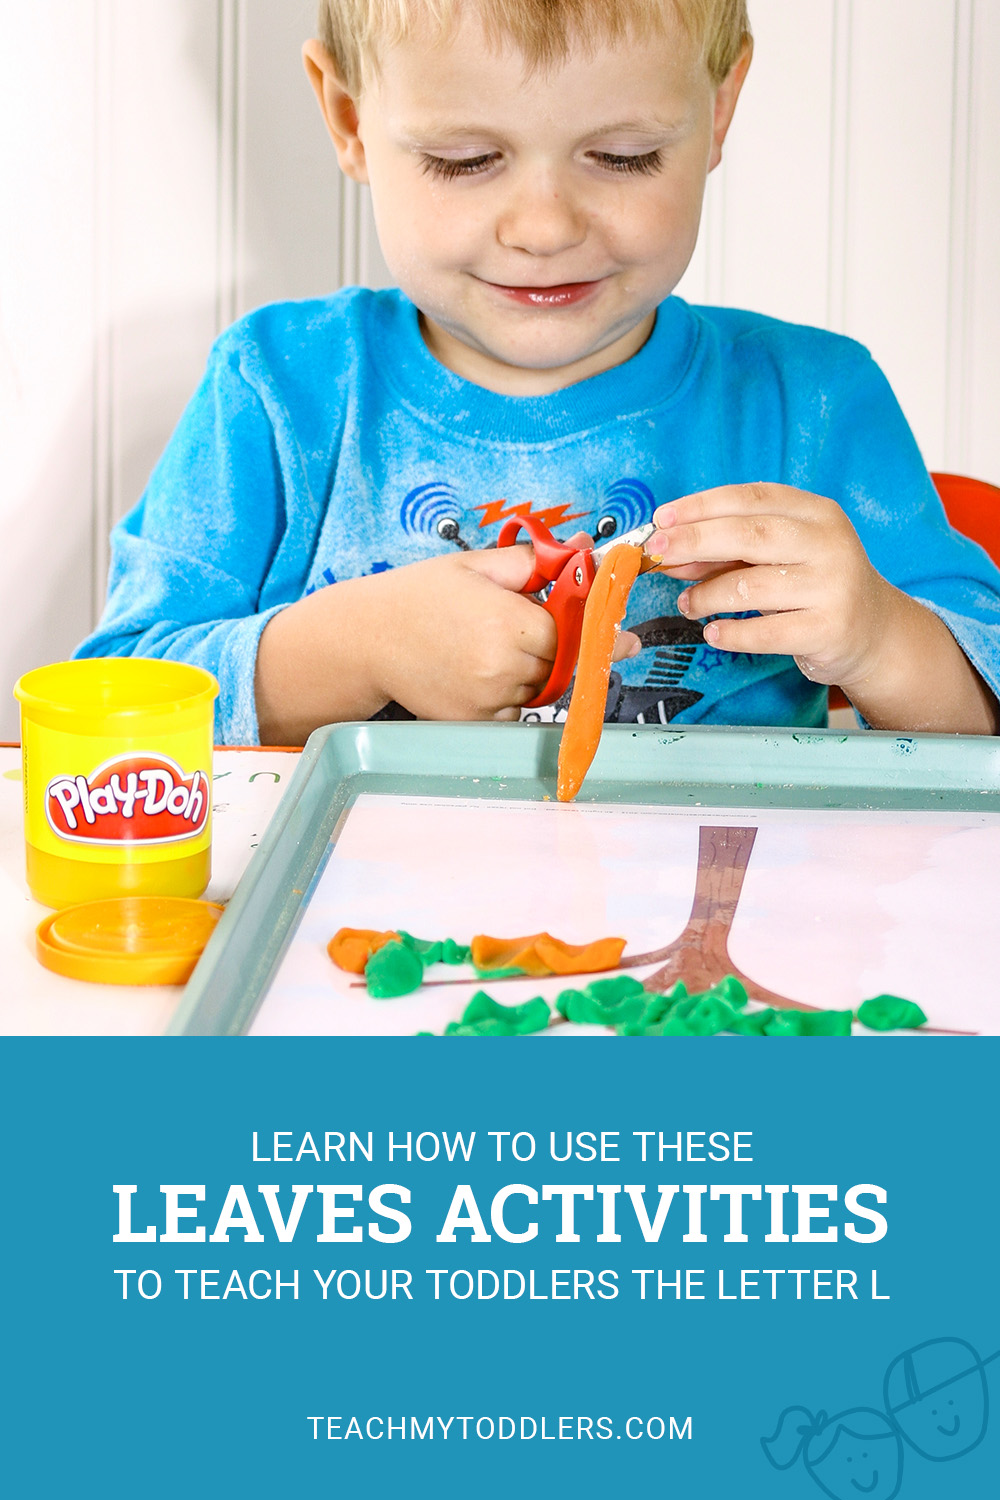 Learn how to use these leaves activities to teach toddlers the letter l